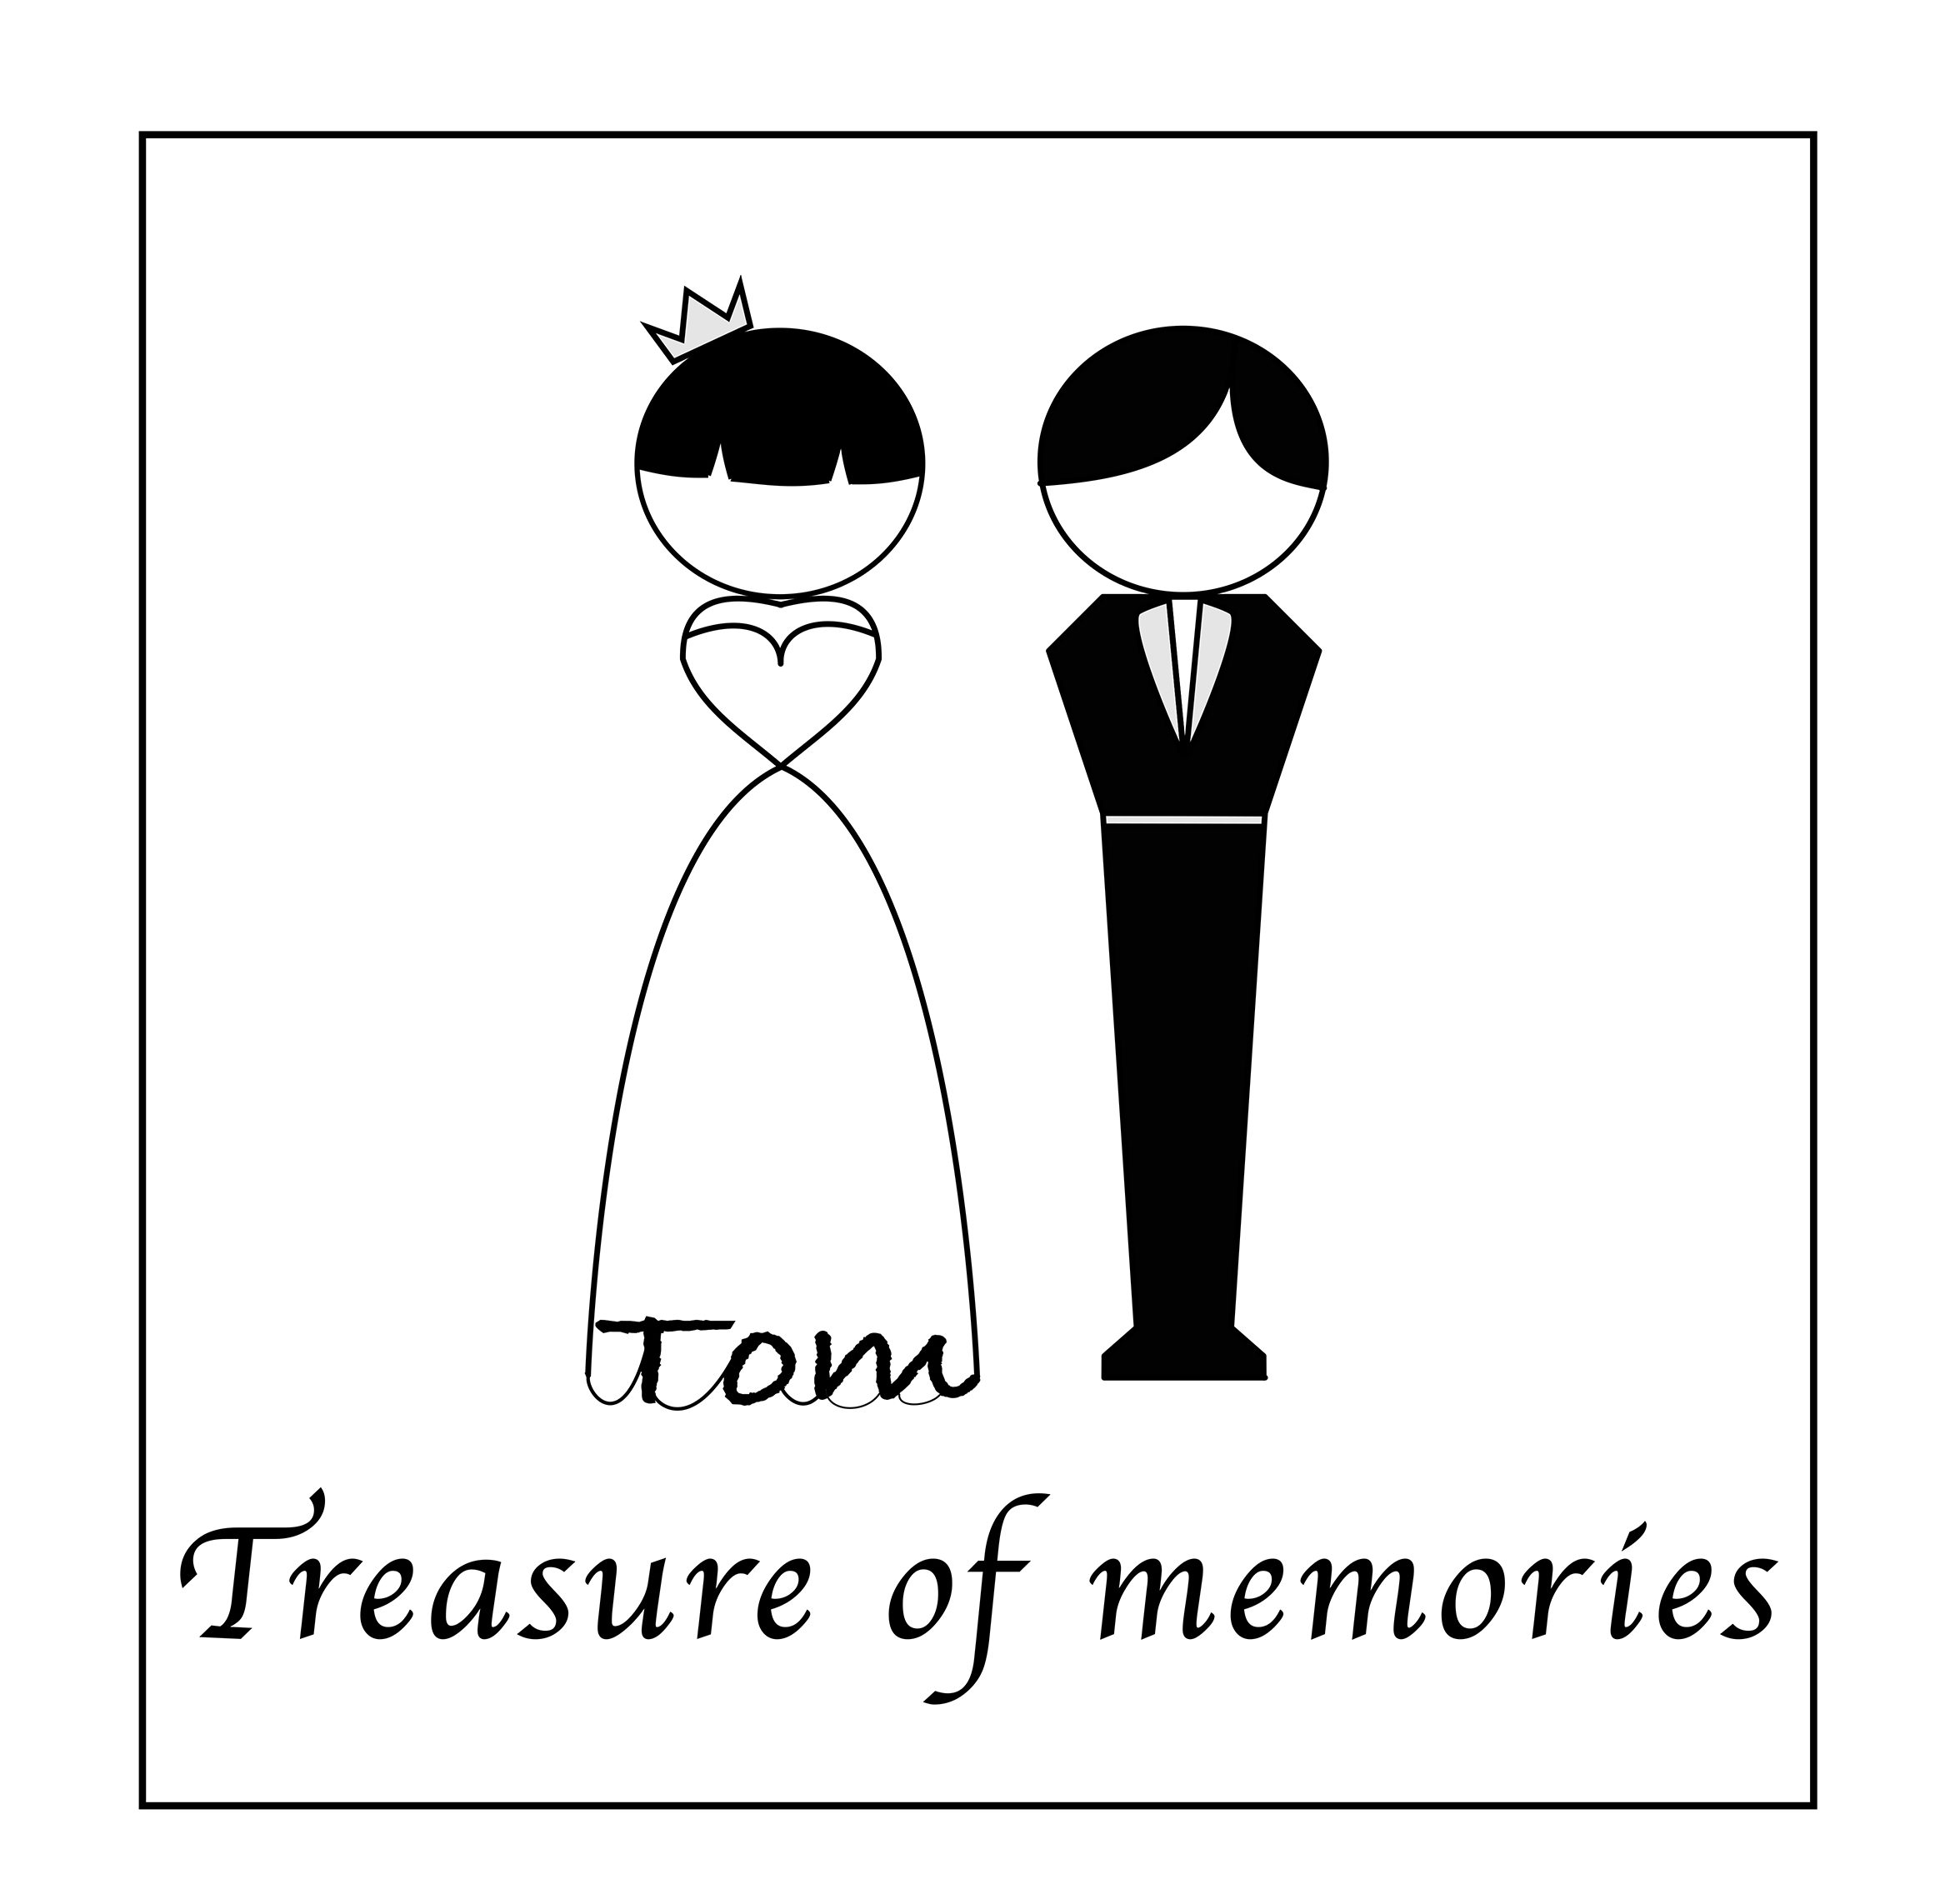 木白影像工作室 Tom-Treasure of memories